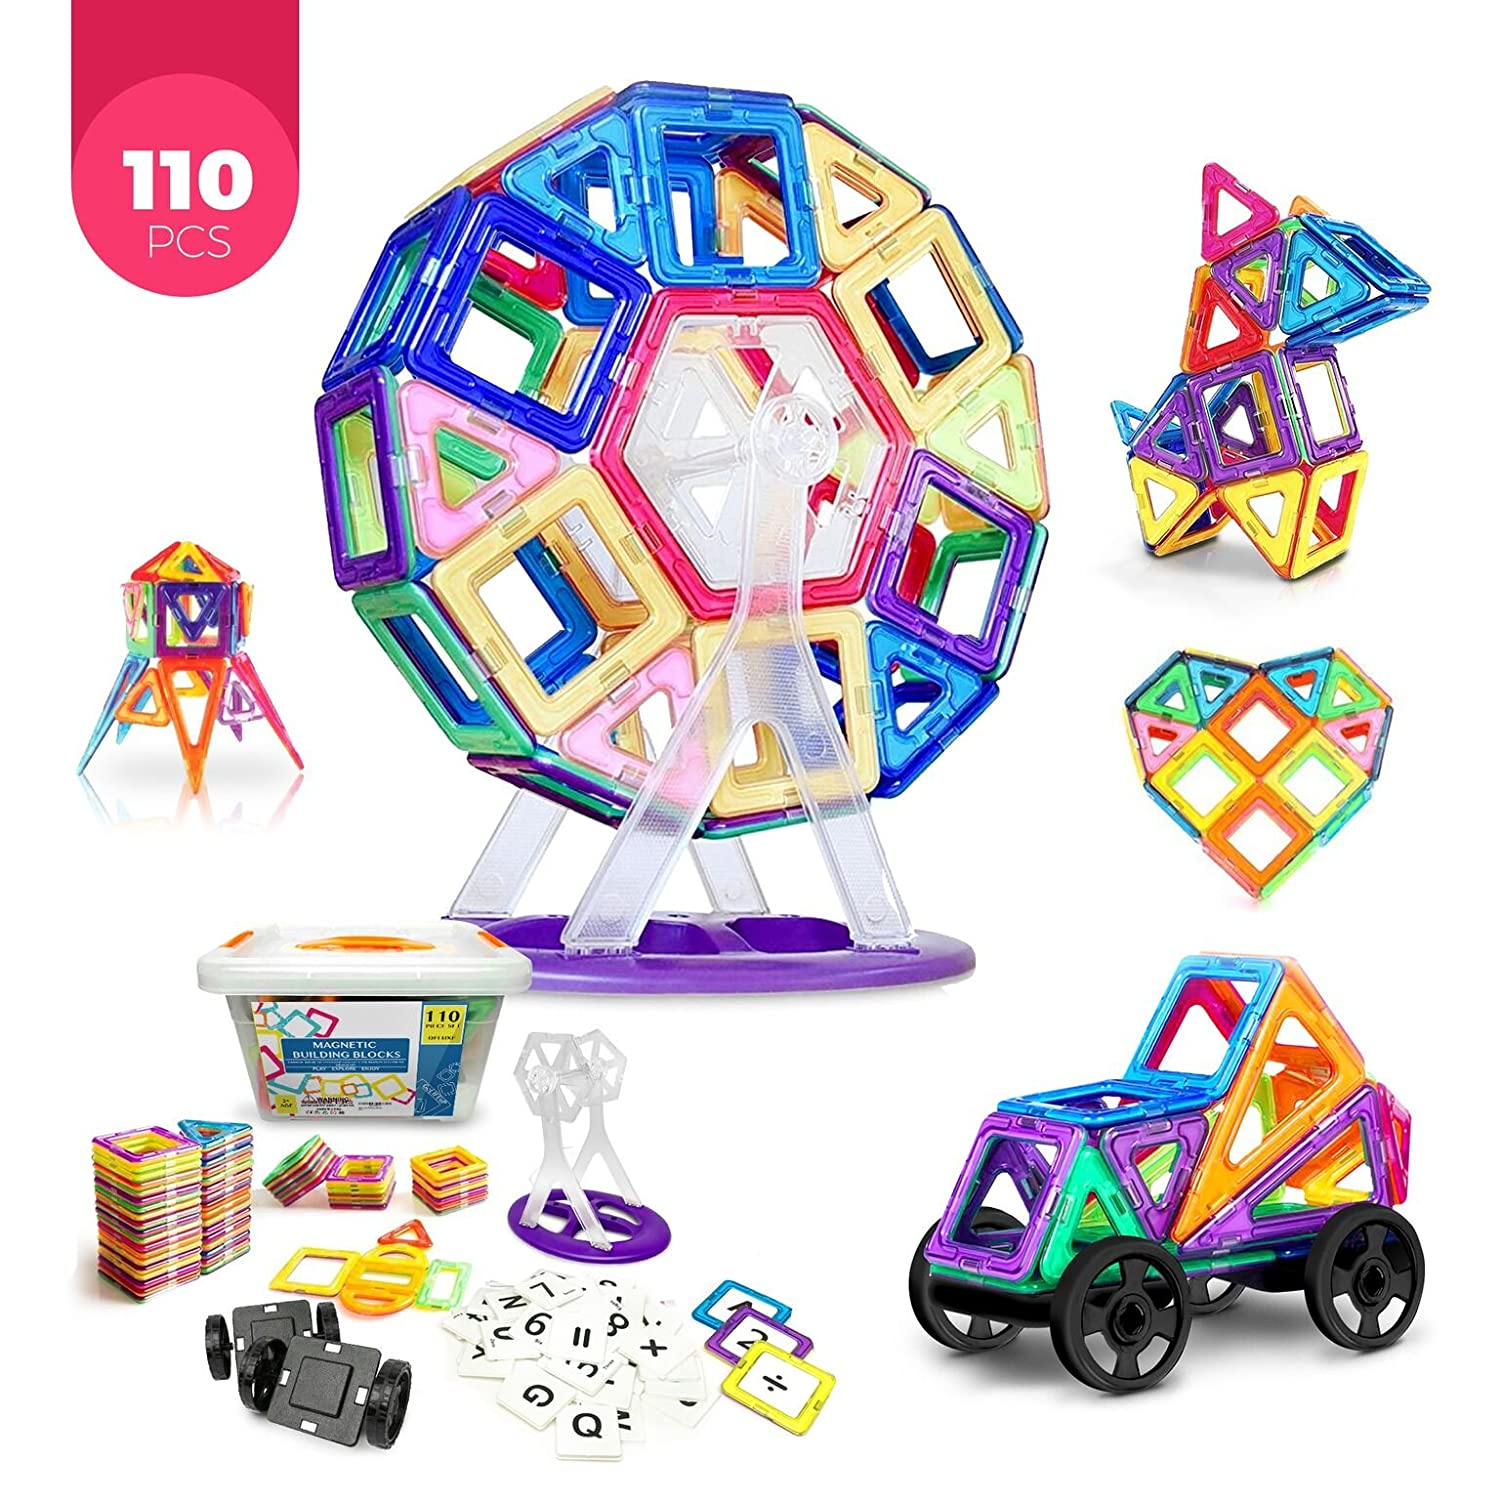 Magnetic Building Blocks Educational Learning Toys Deluxe 110 pcs Construction Tiles Toys Set for Children Toddlers Girls Boys Helps Best Gifts for Kids